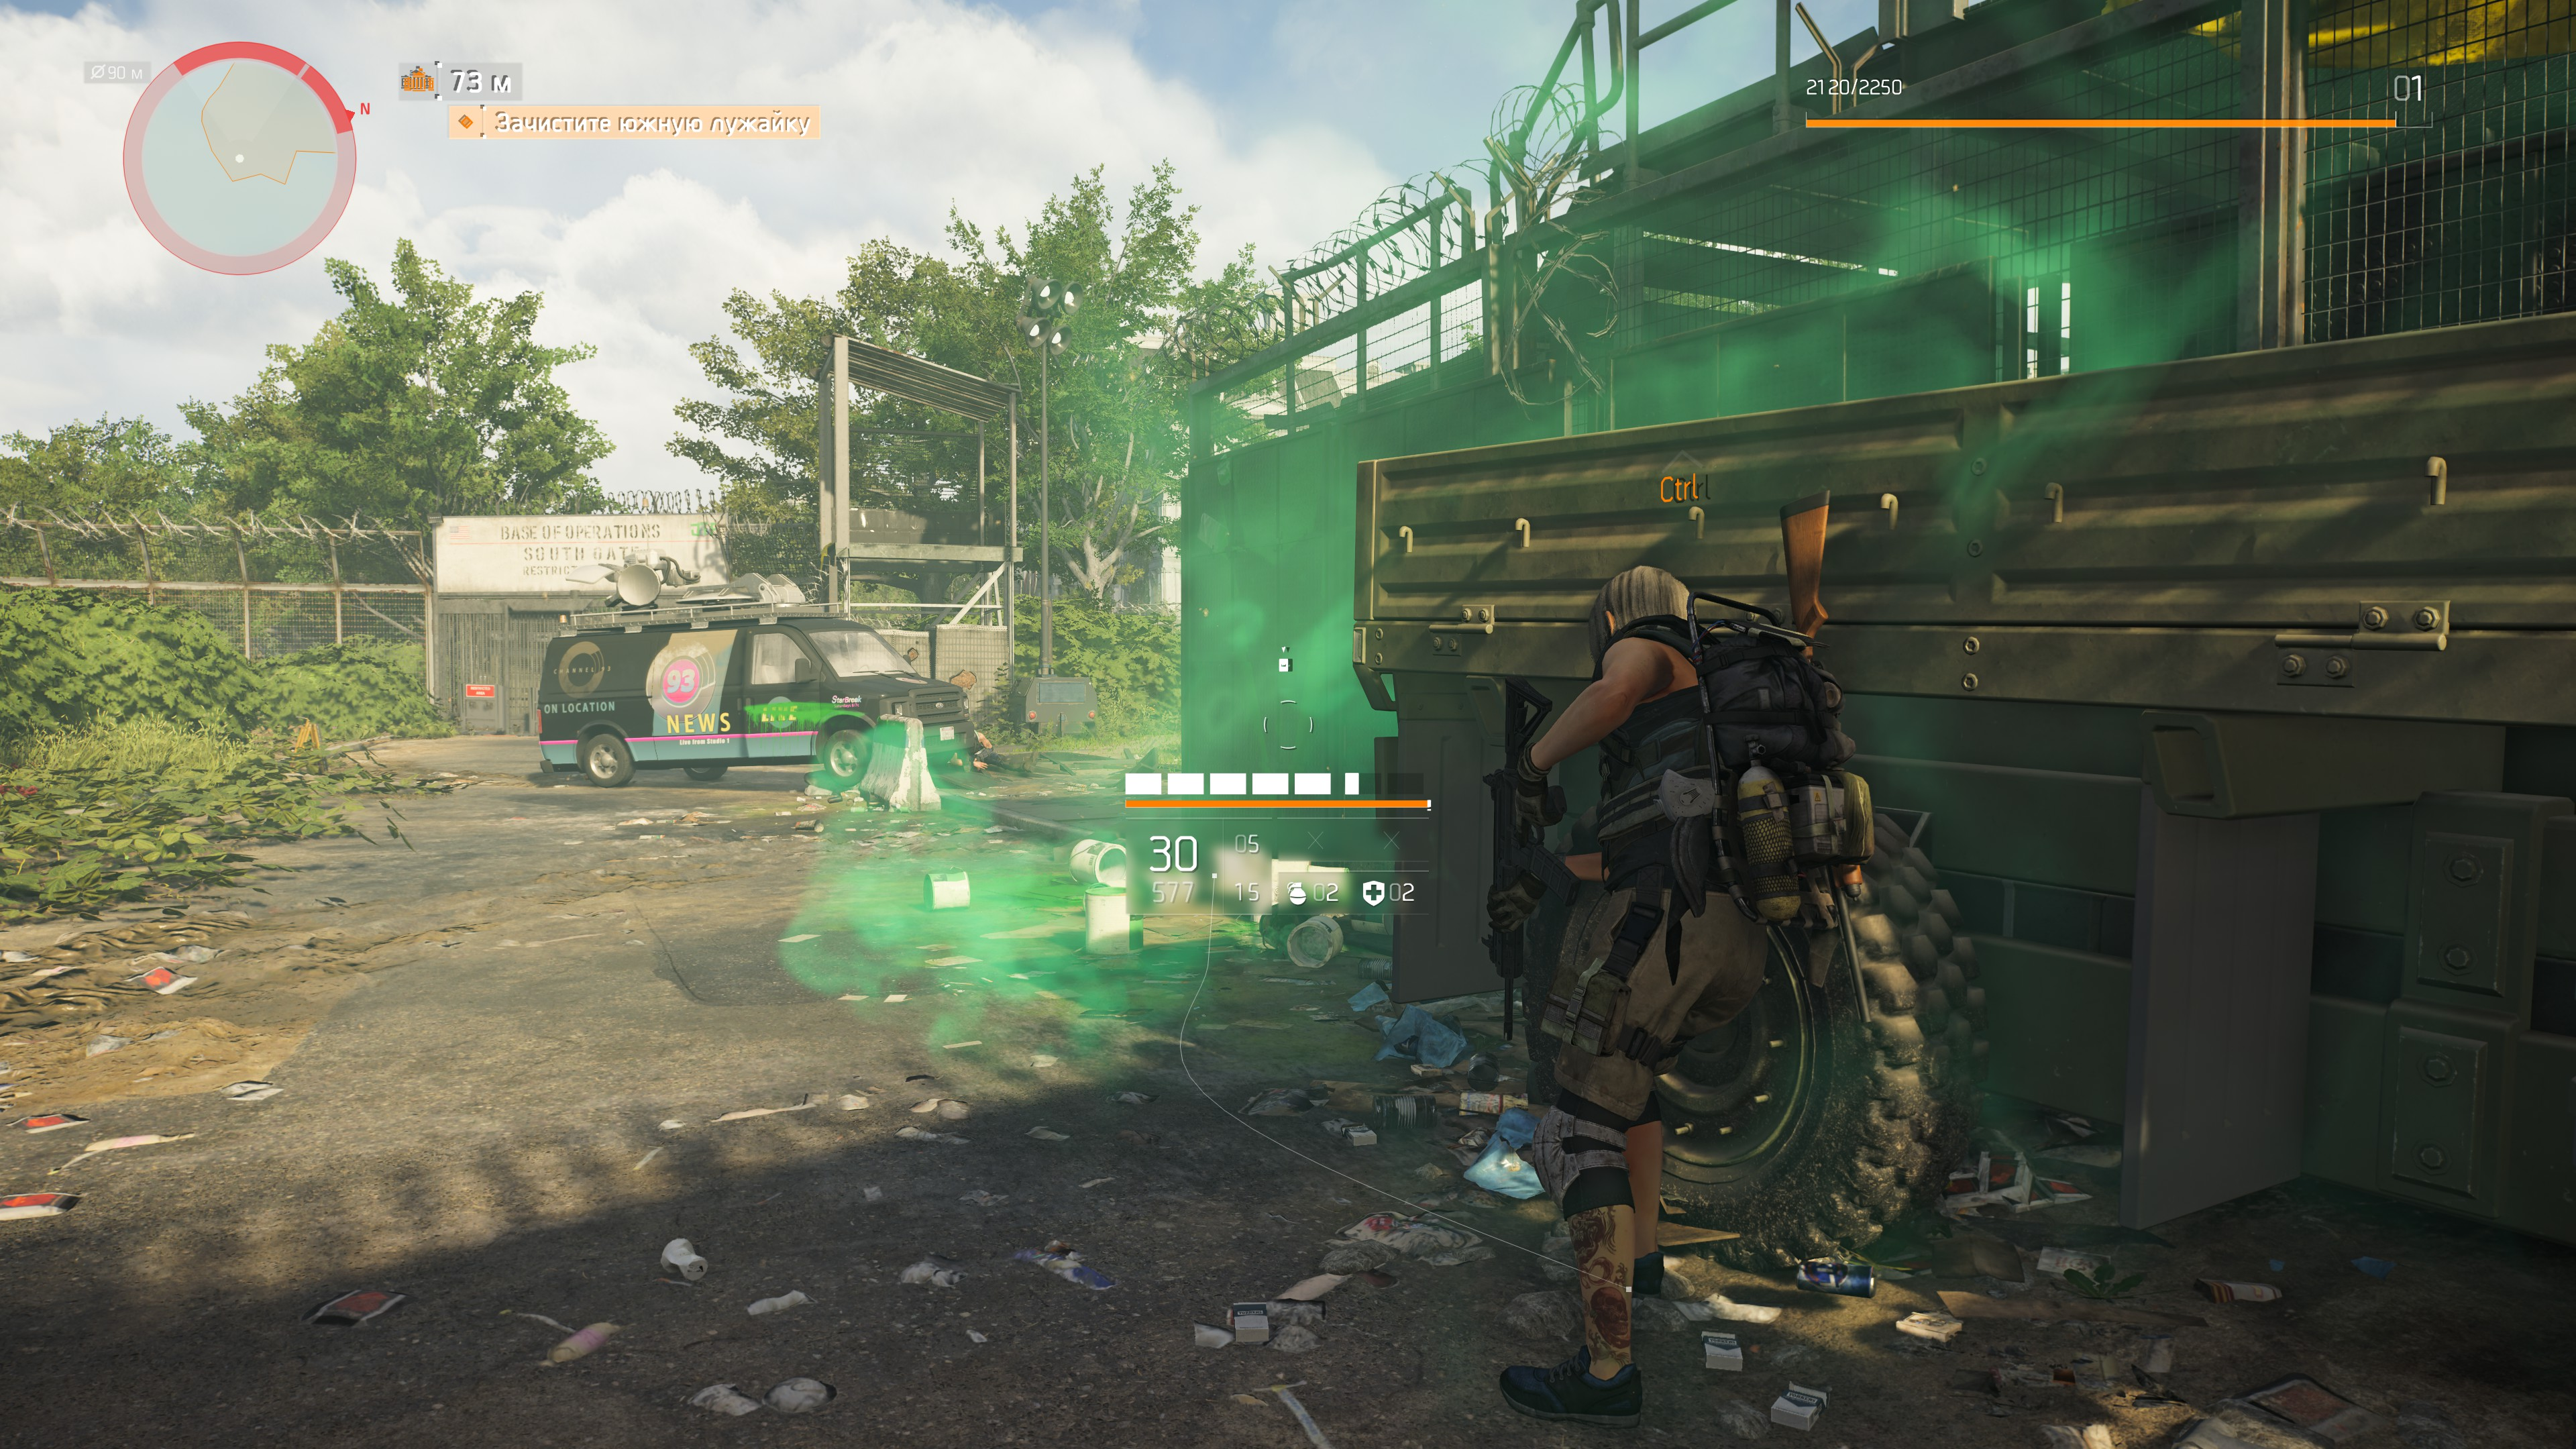 Tom Clancy's The Division® 22020-3-1-5-50-25.jpg - Tom Clancy's The Division 2